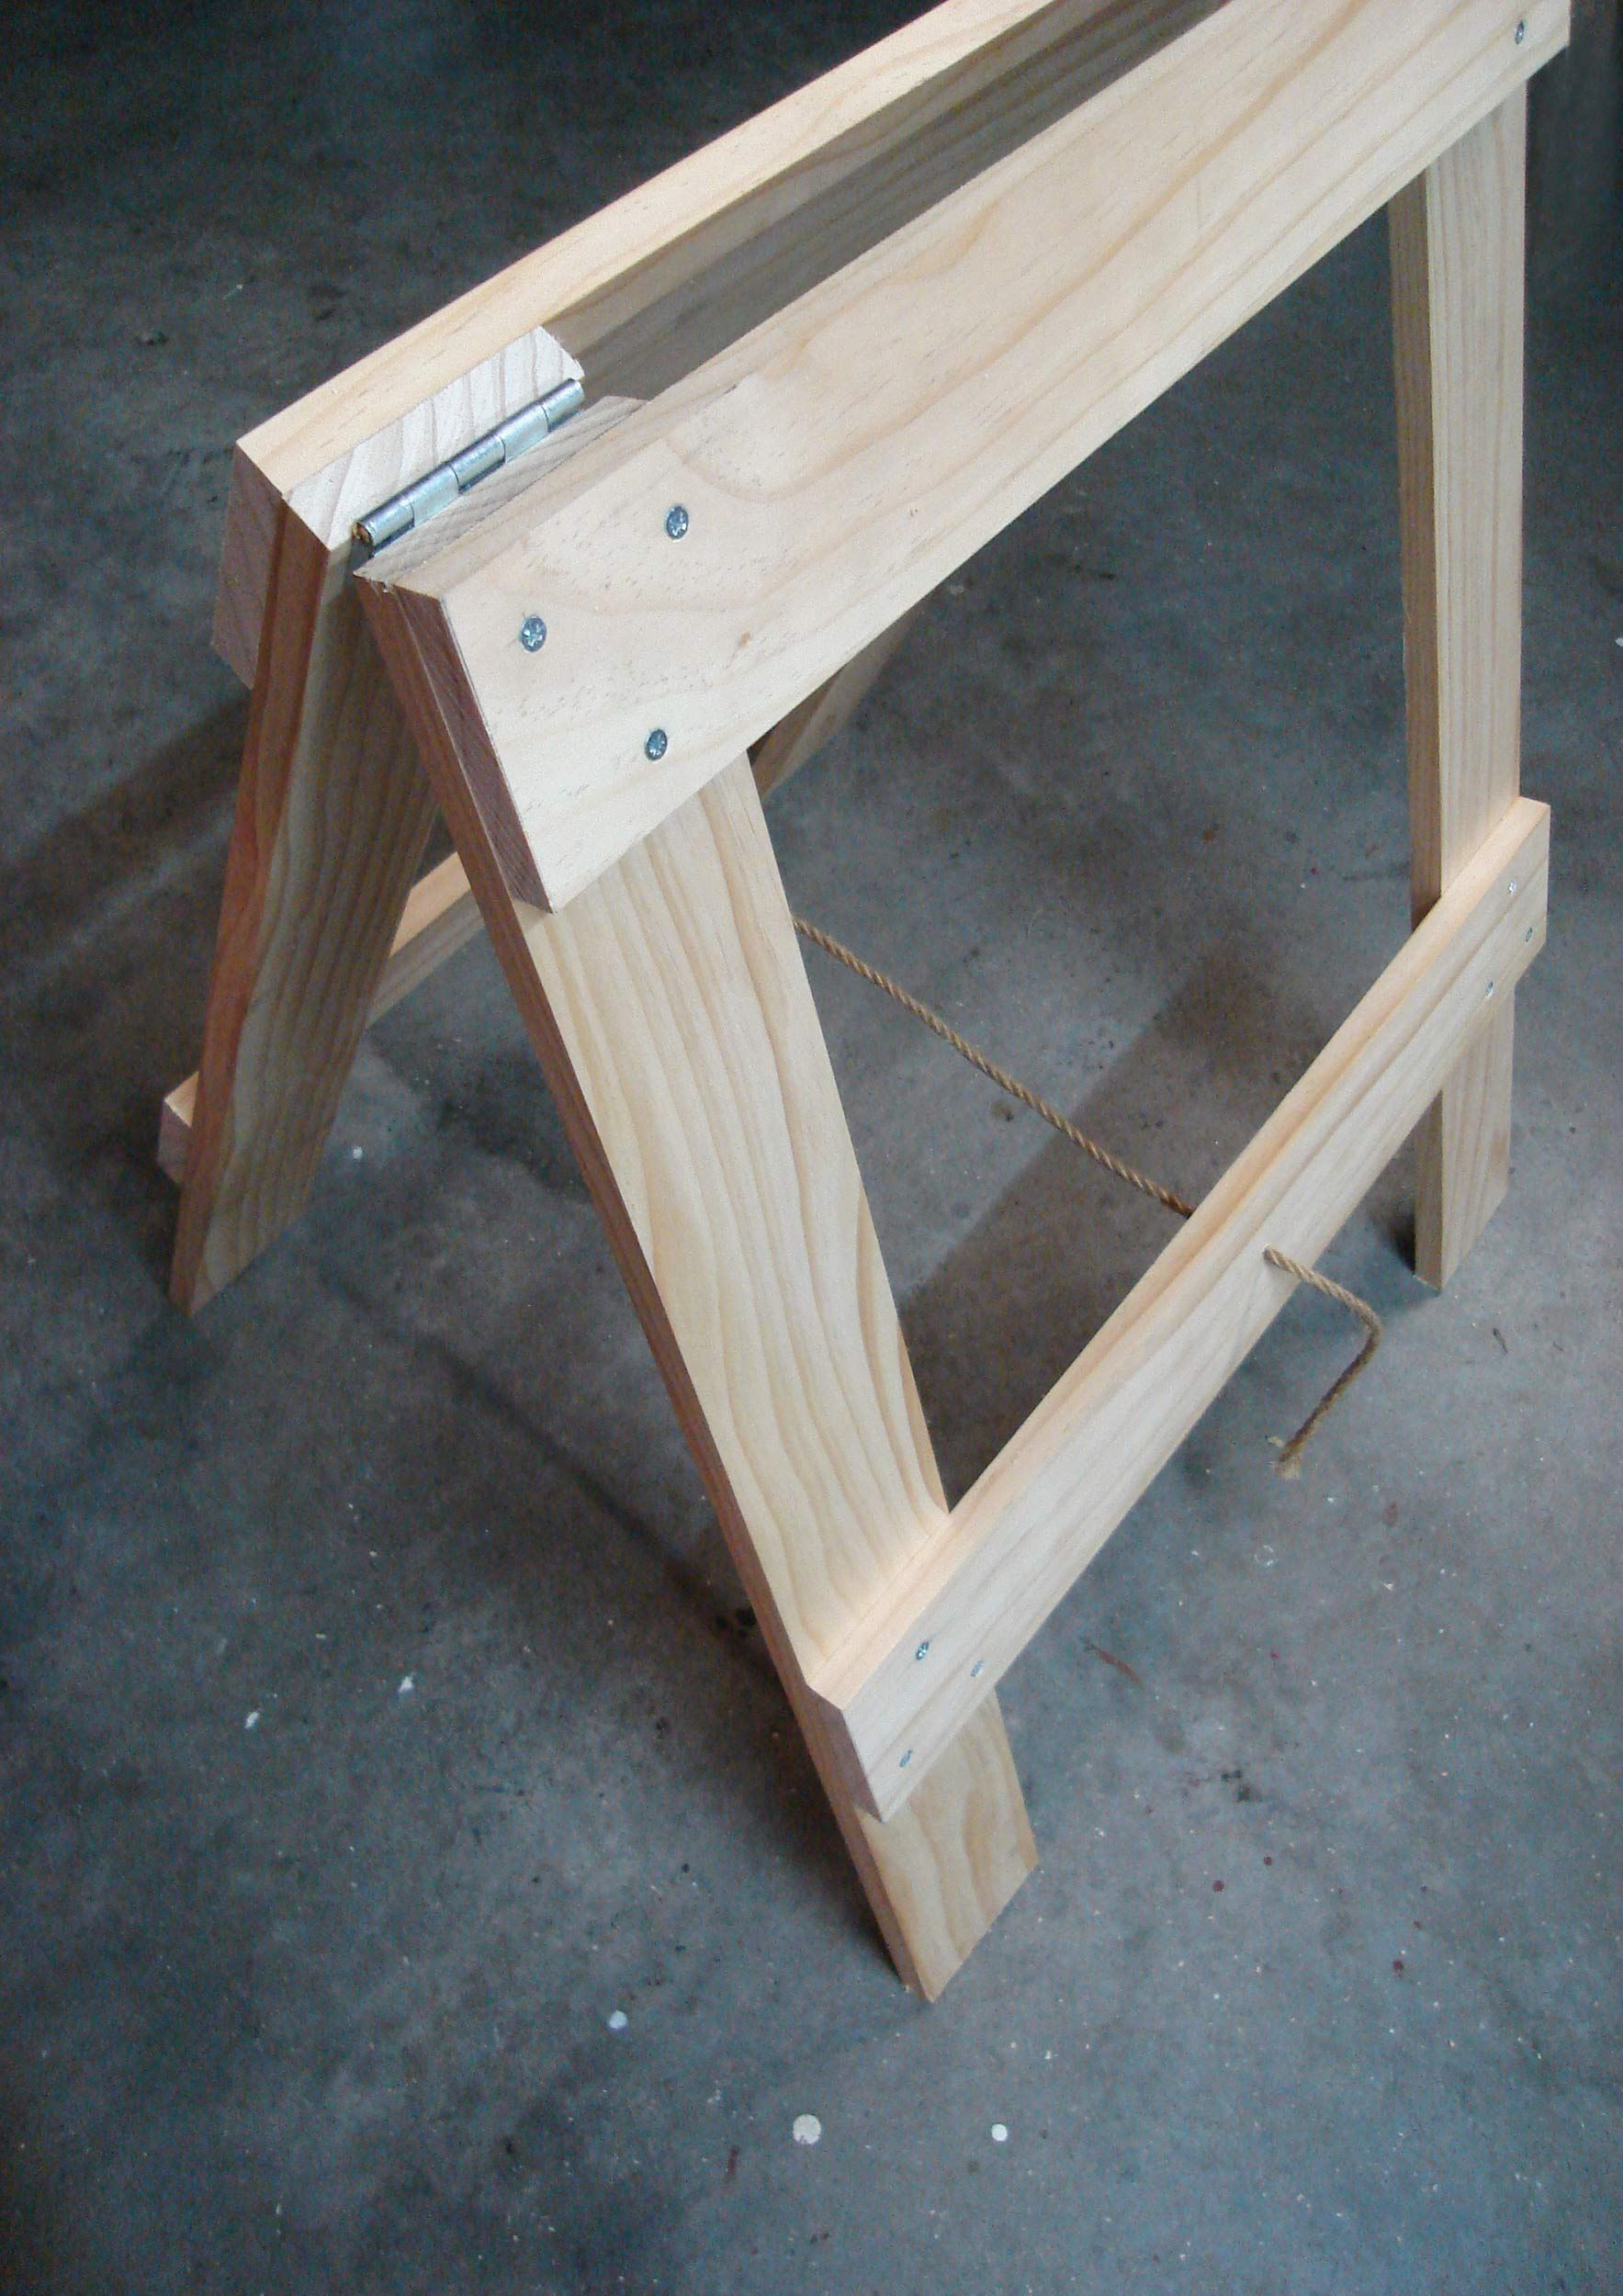 Pin By Andy Smith On Woodworking Diy Wood Projects Wood